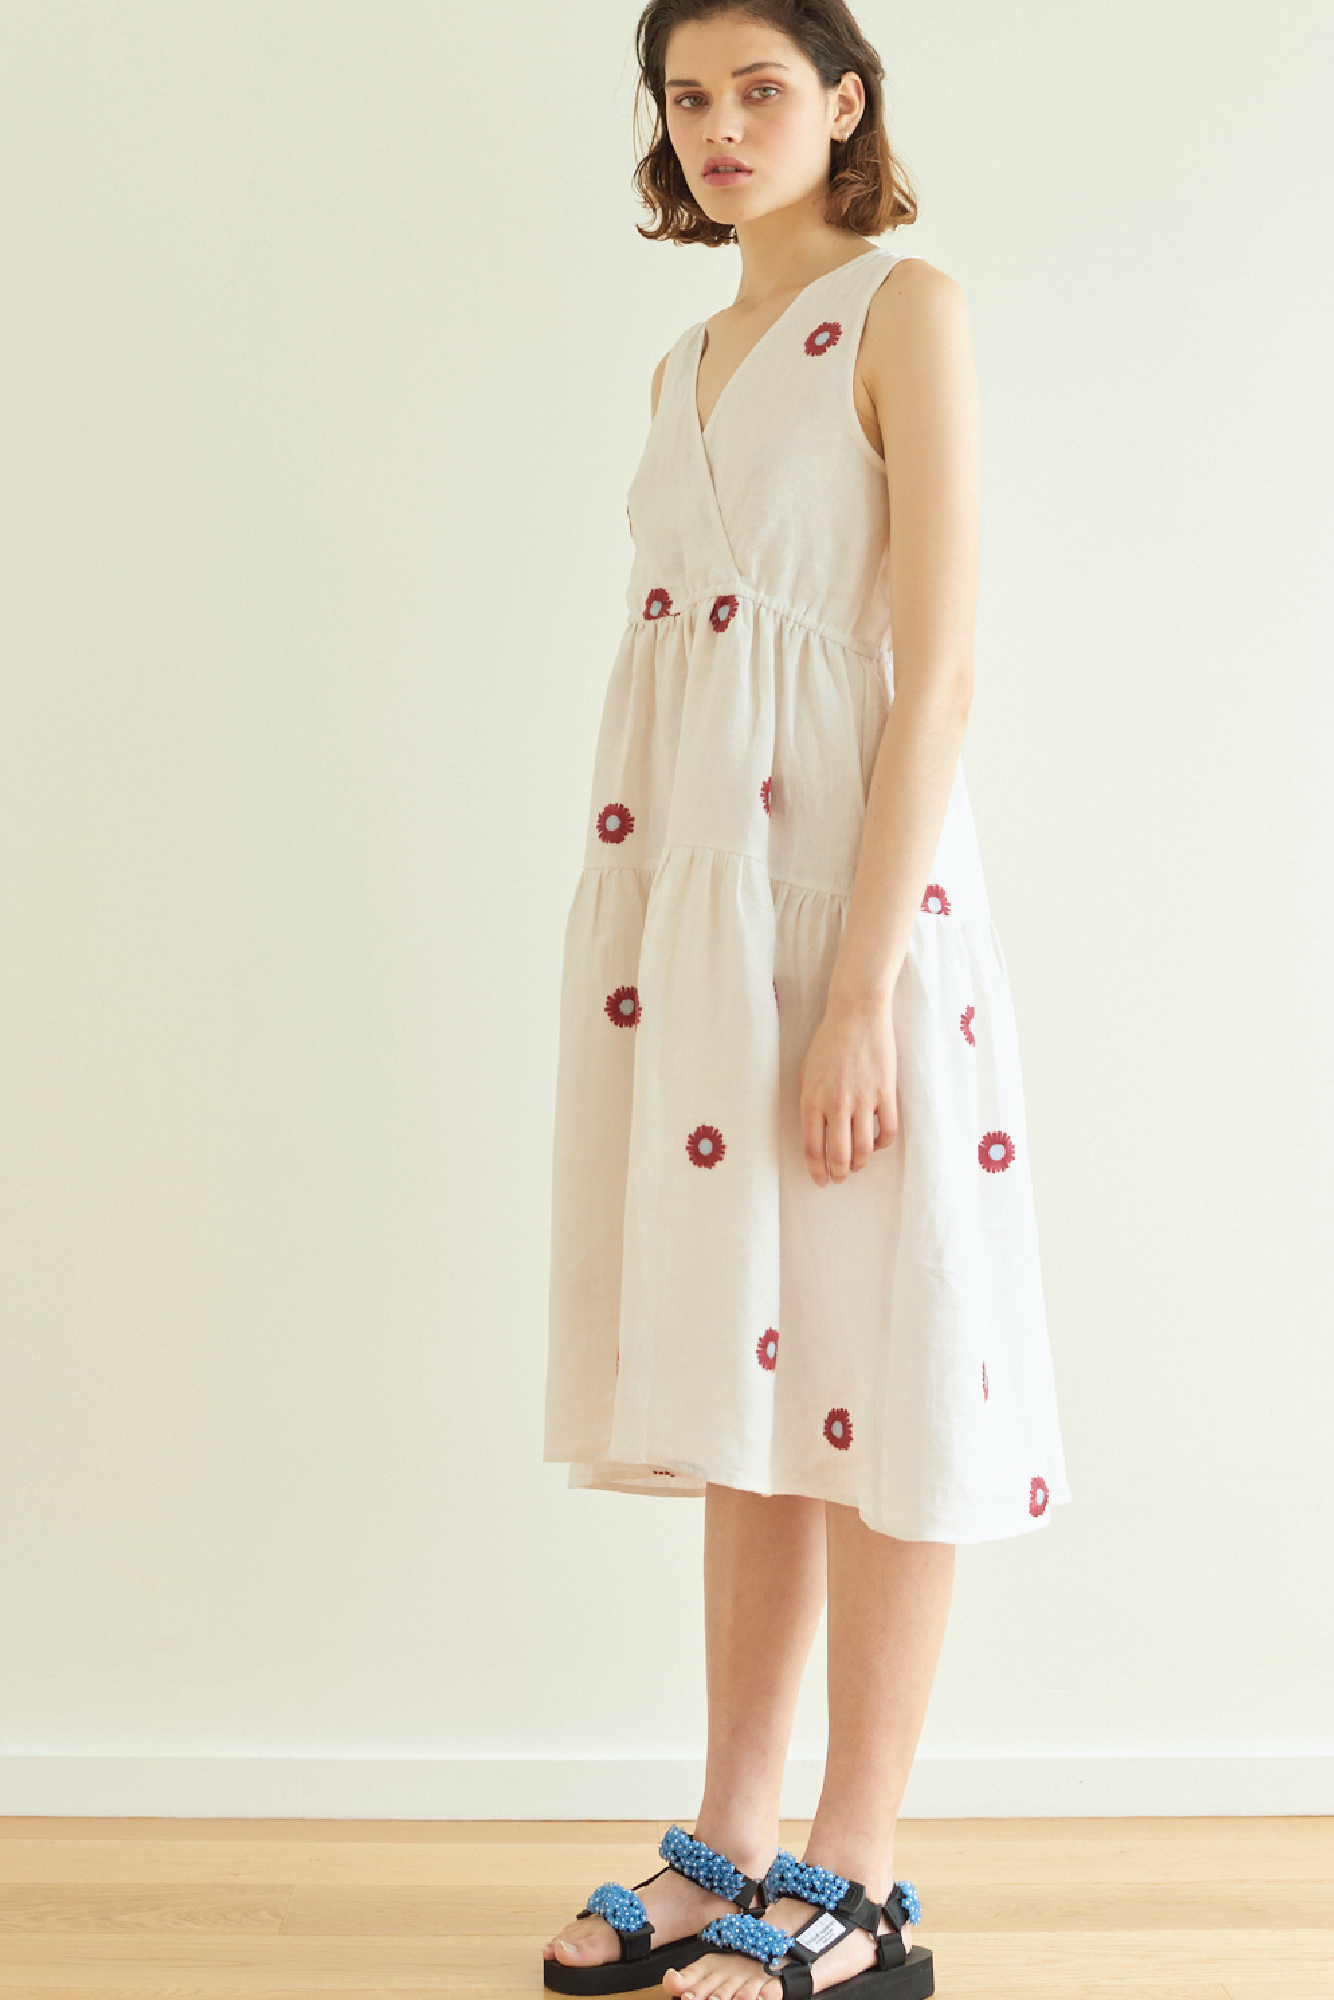 BFF Dress in White Daisy - hej hej